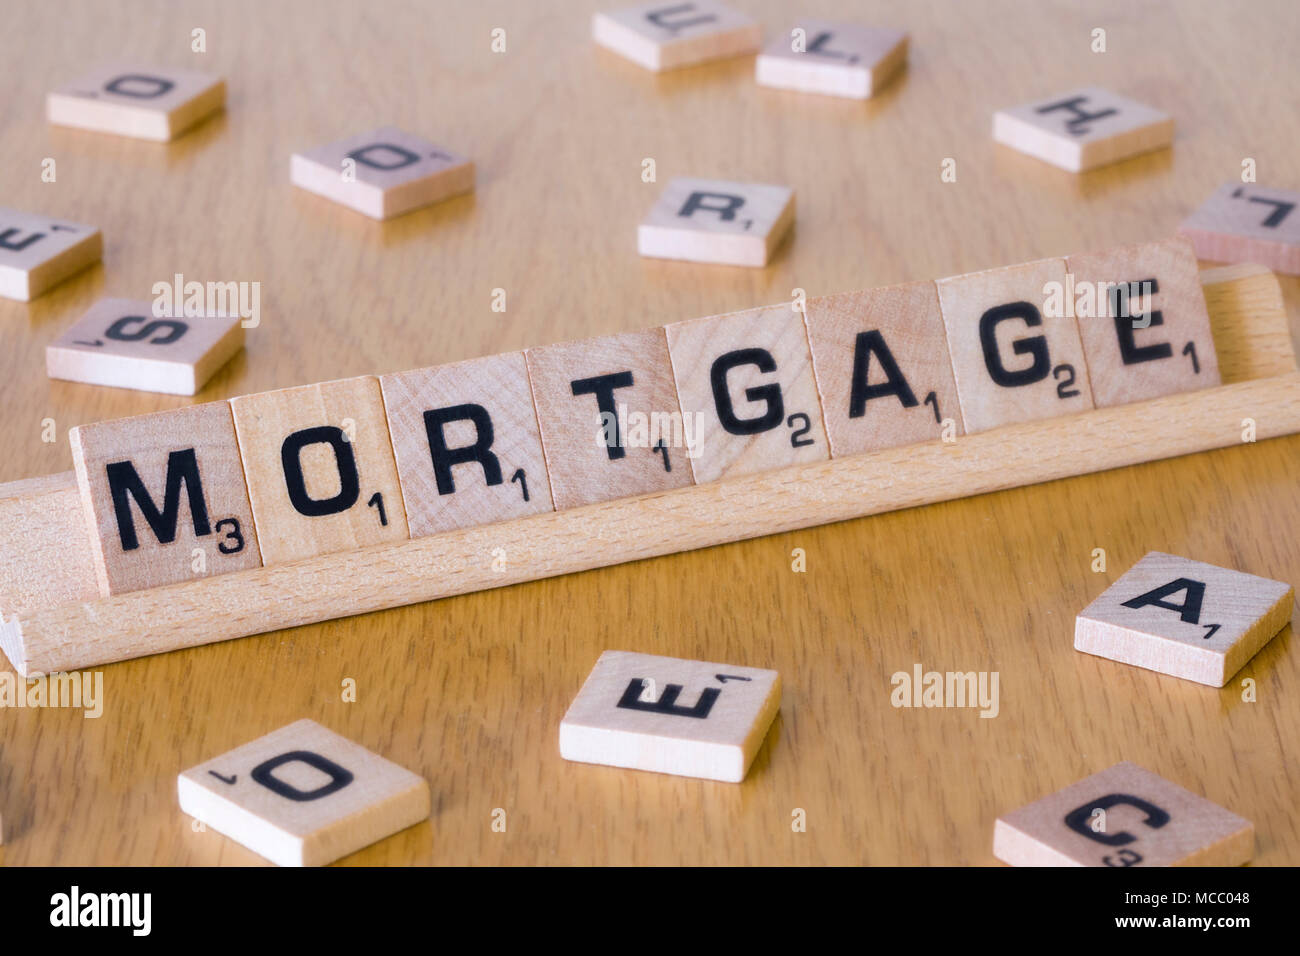 Scrabble letters spelling out the word Mortgage - Stock Image